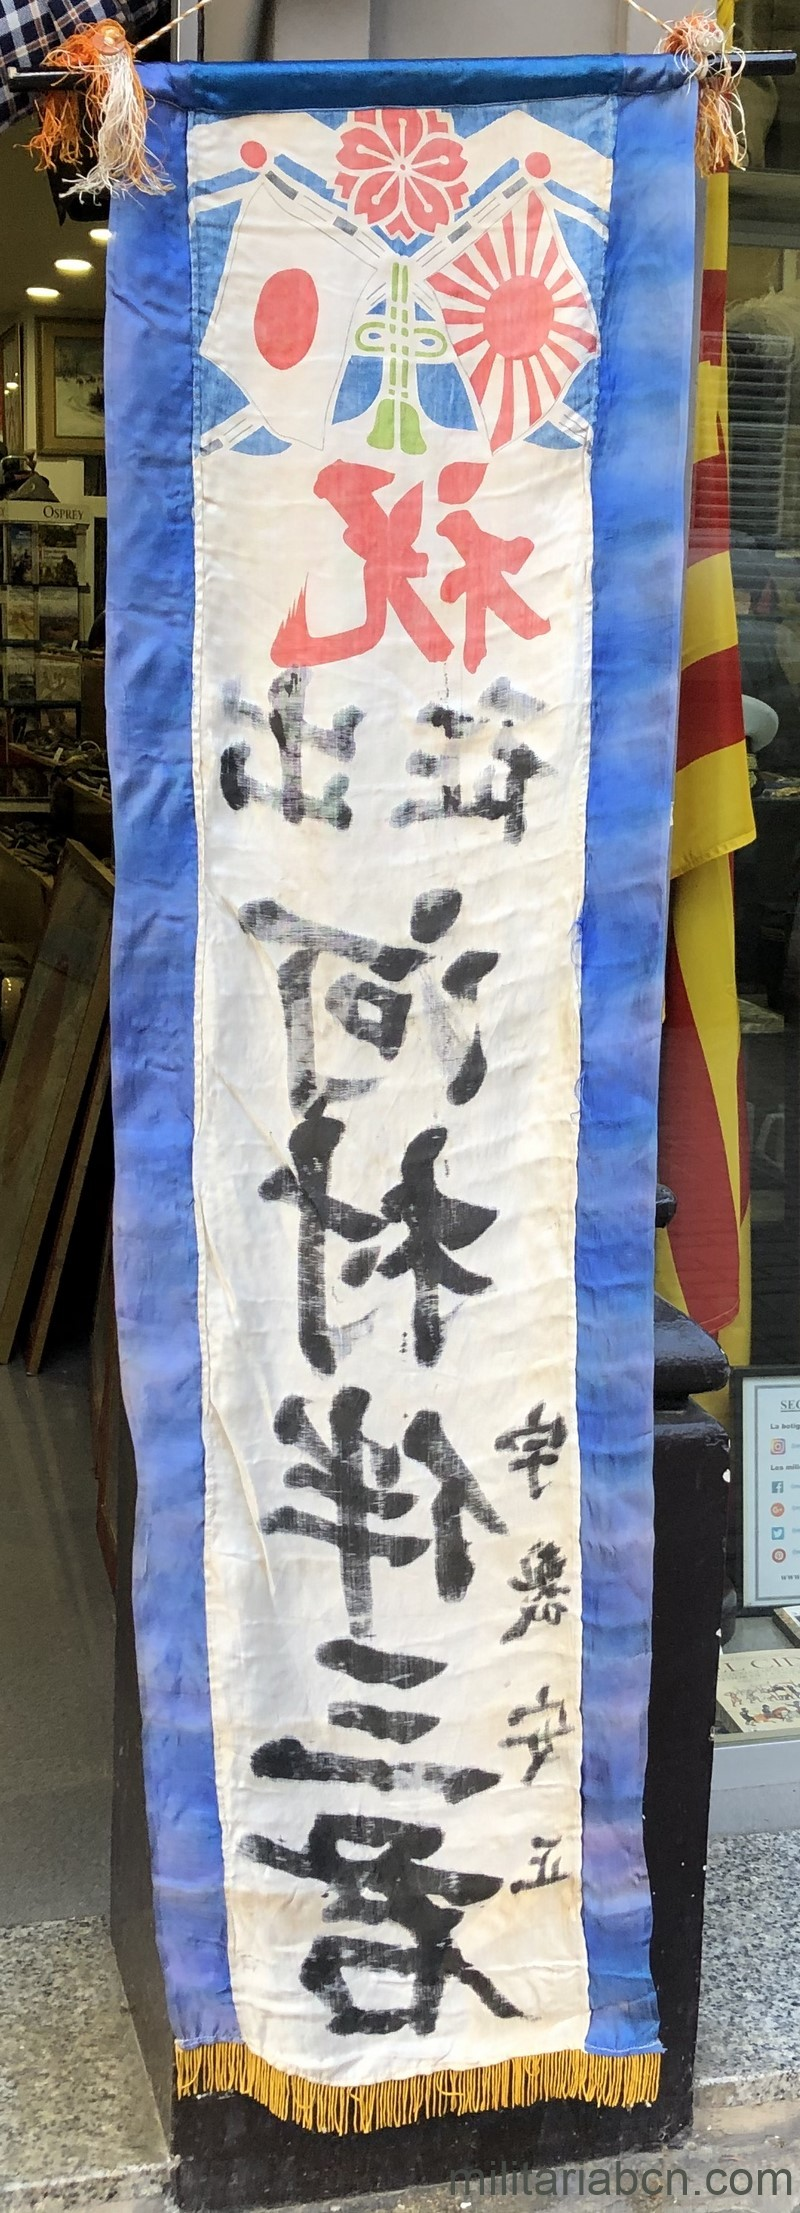 Militaria Barcelona Japan.  Banner (hinomaru or Shussei nobori) dedicated to a soldier on the march to war.  World War II period.  157 x 43 cm.  Silk. back